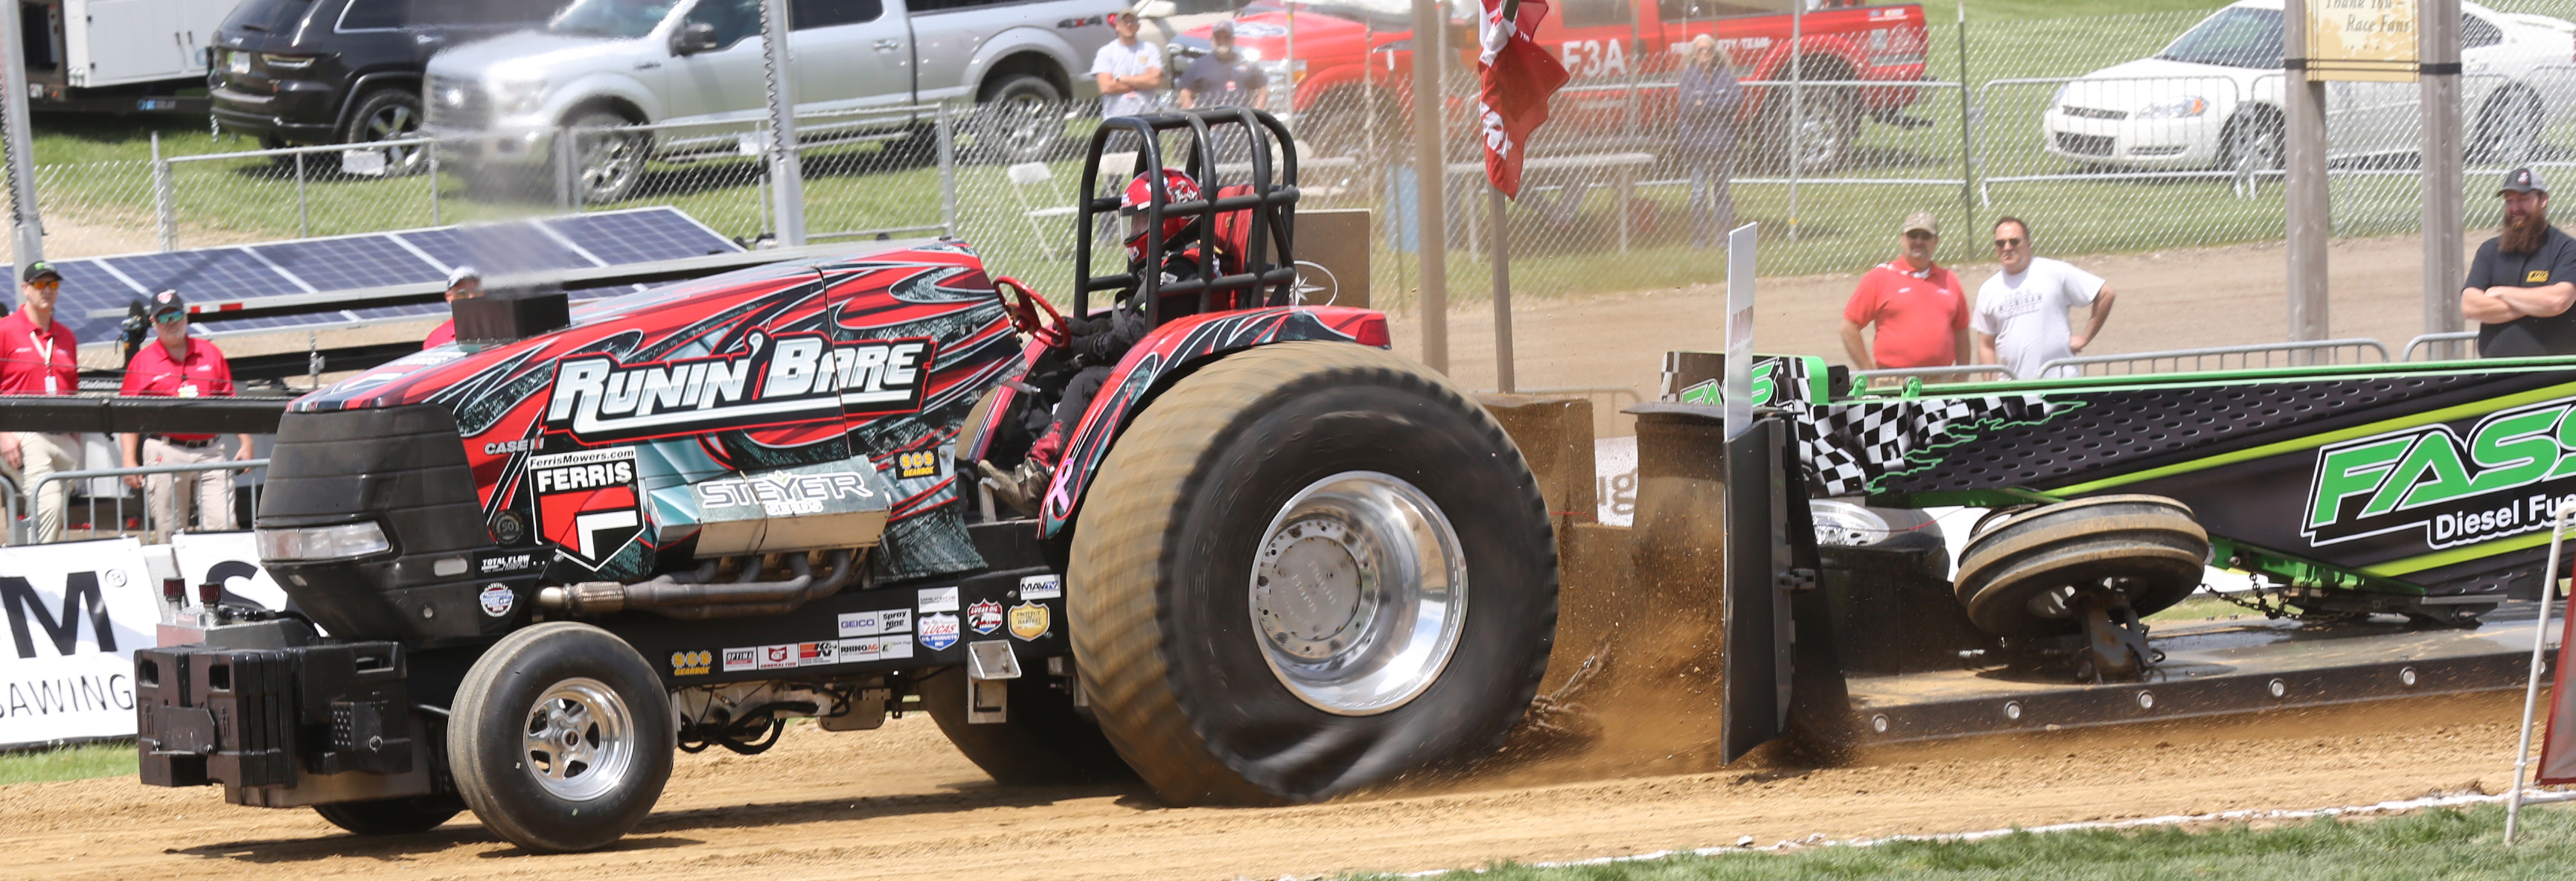 Tractor/Truck Pull At MIS